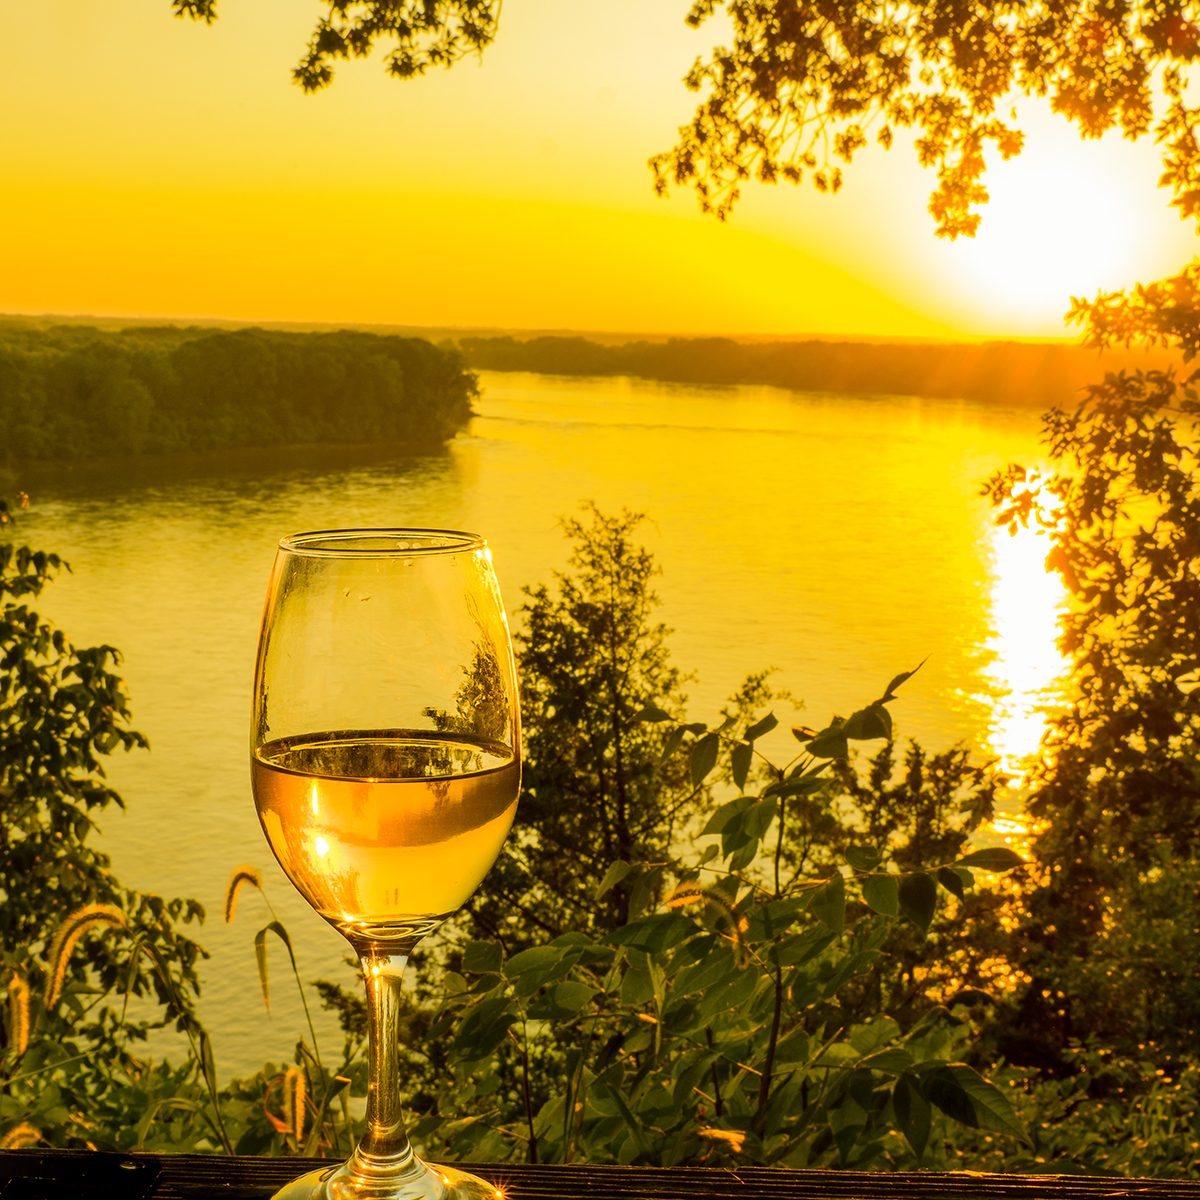 Beautiful view of glass of wine at sunset